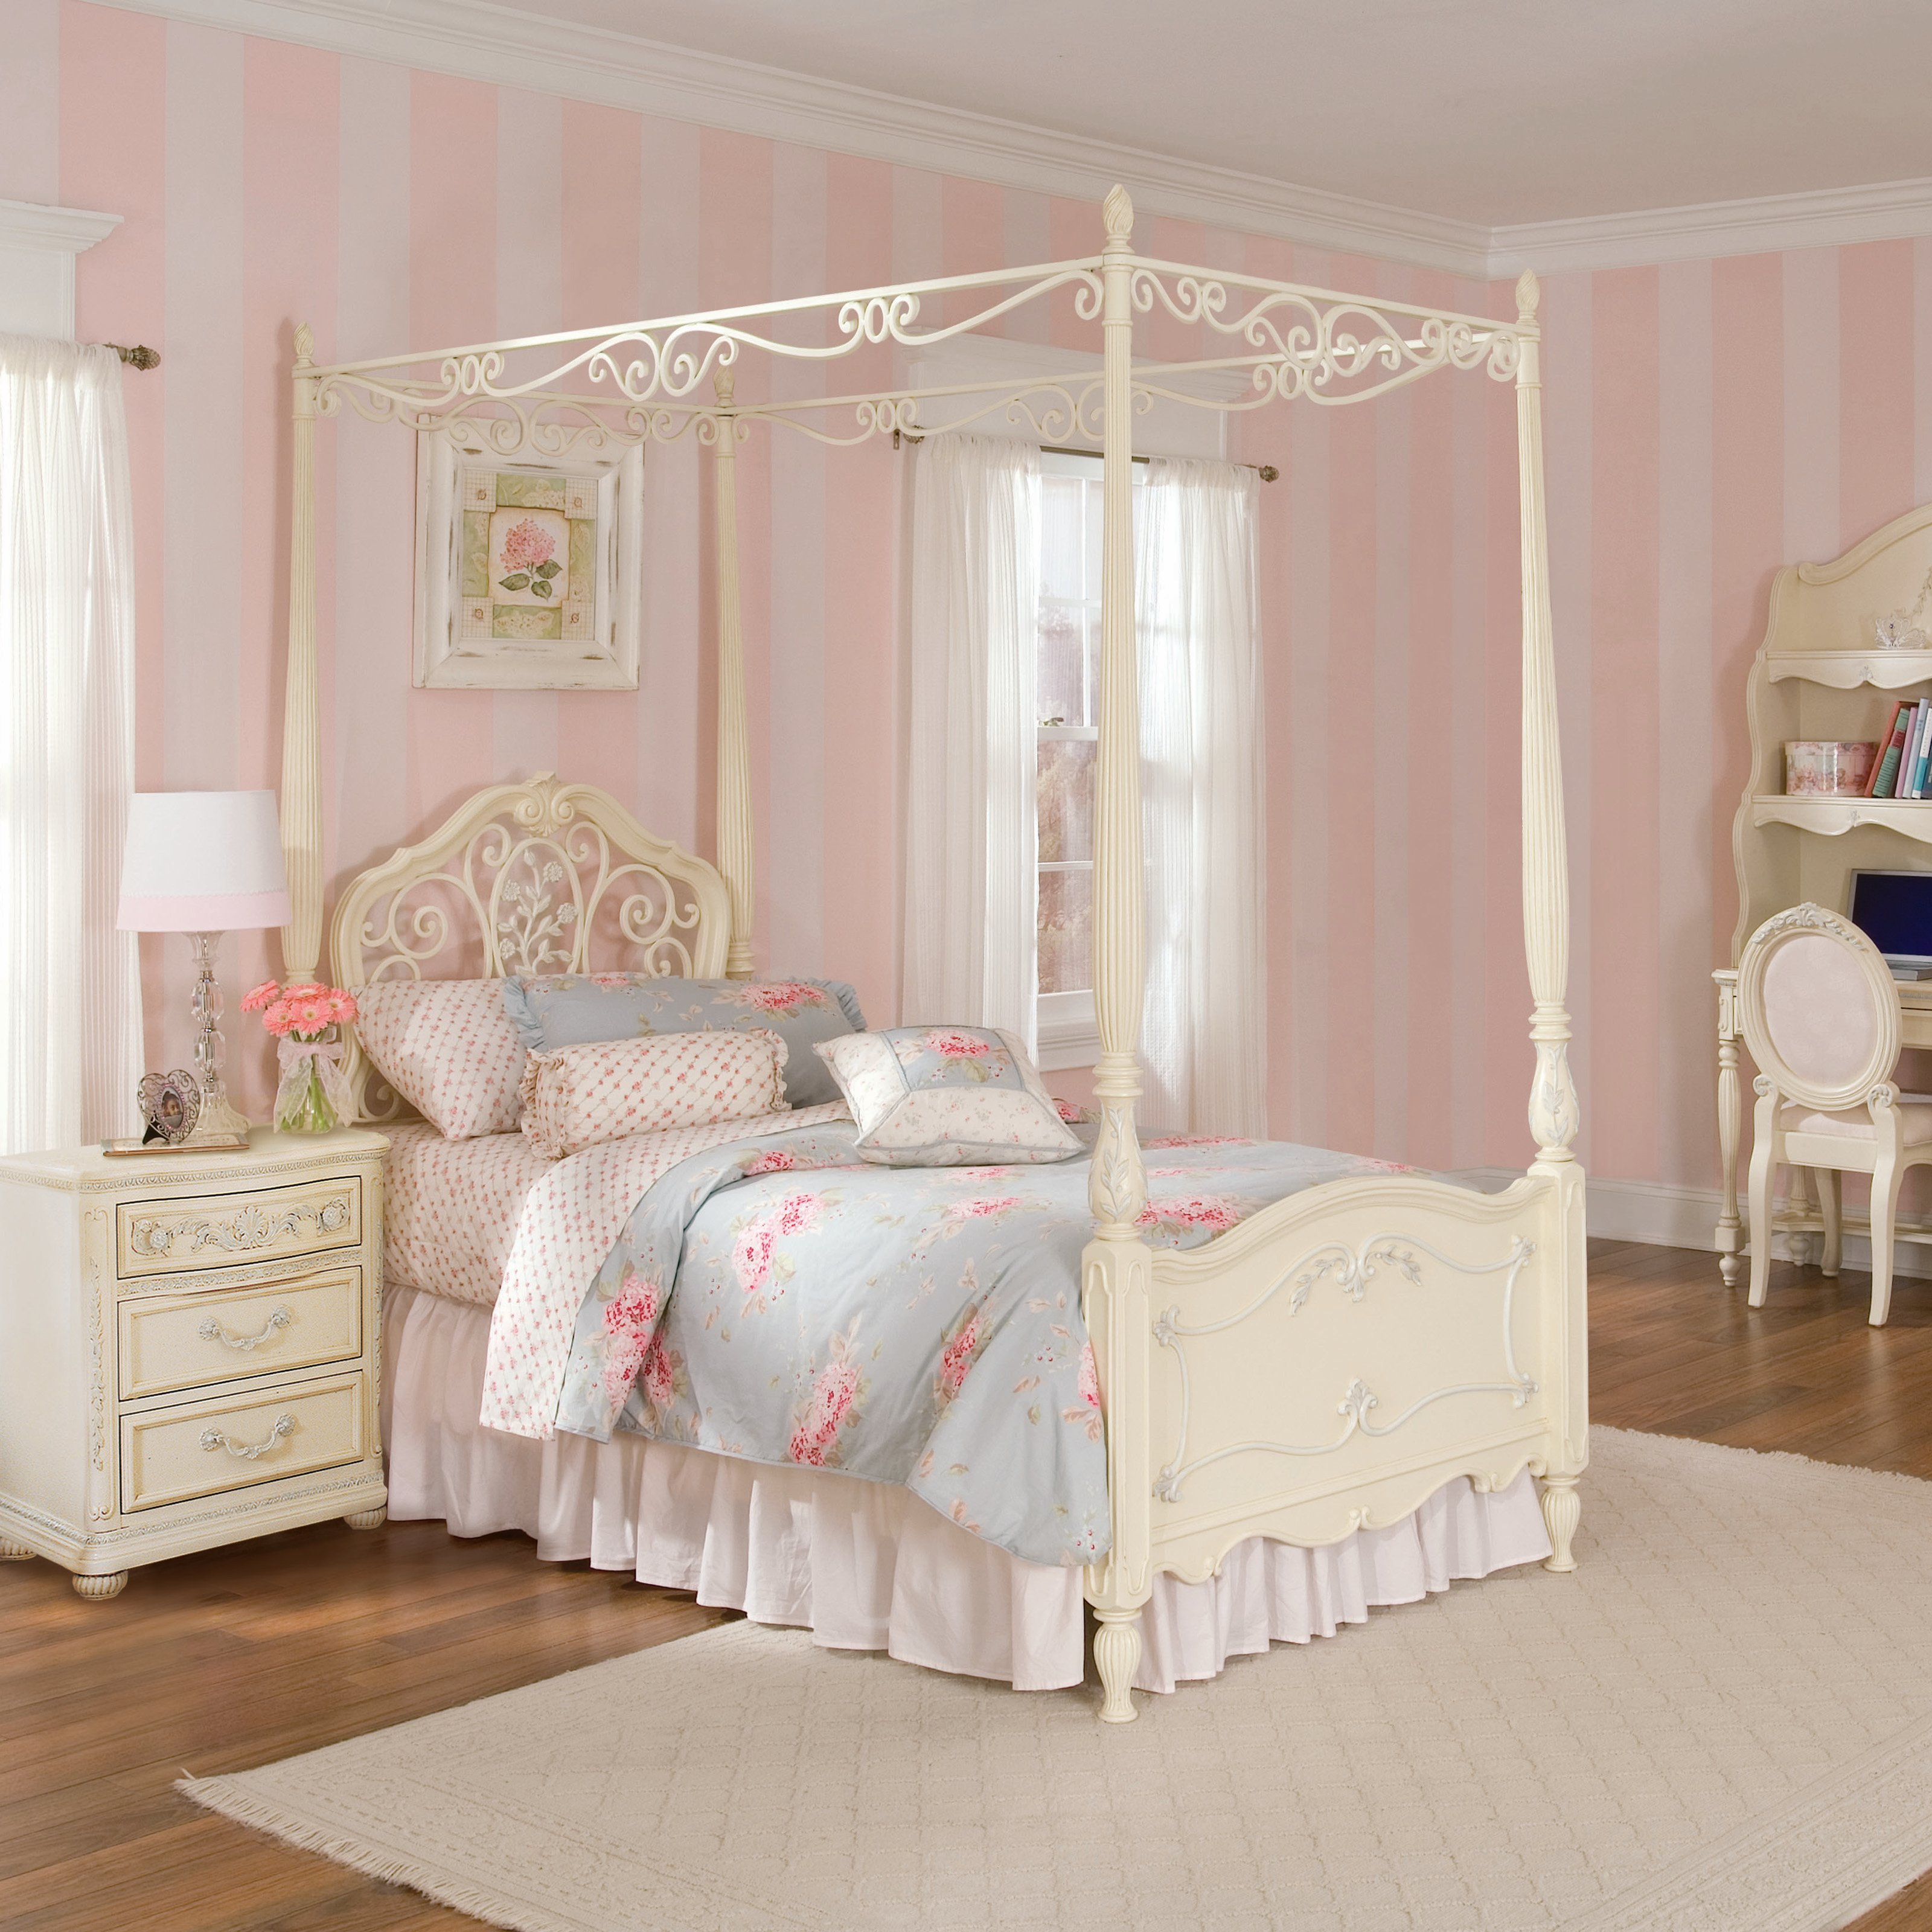 Add Elegant Girls Canopy Bed for Gorgeous Bedroom with White Nightstand and Table Lamp